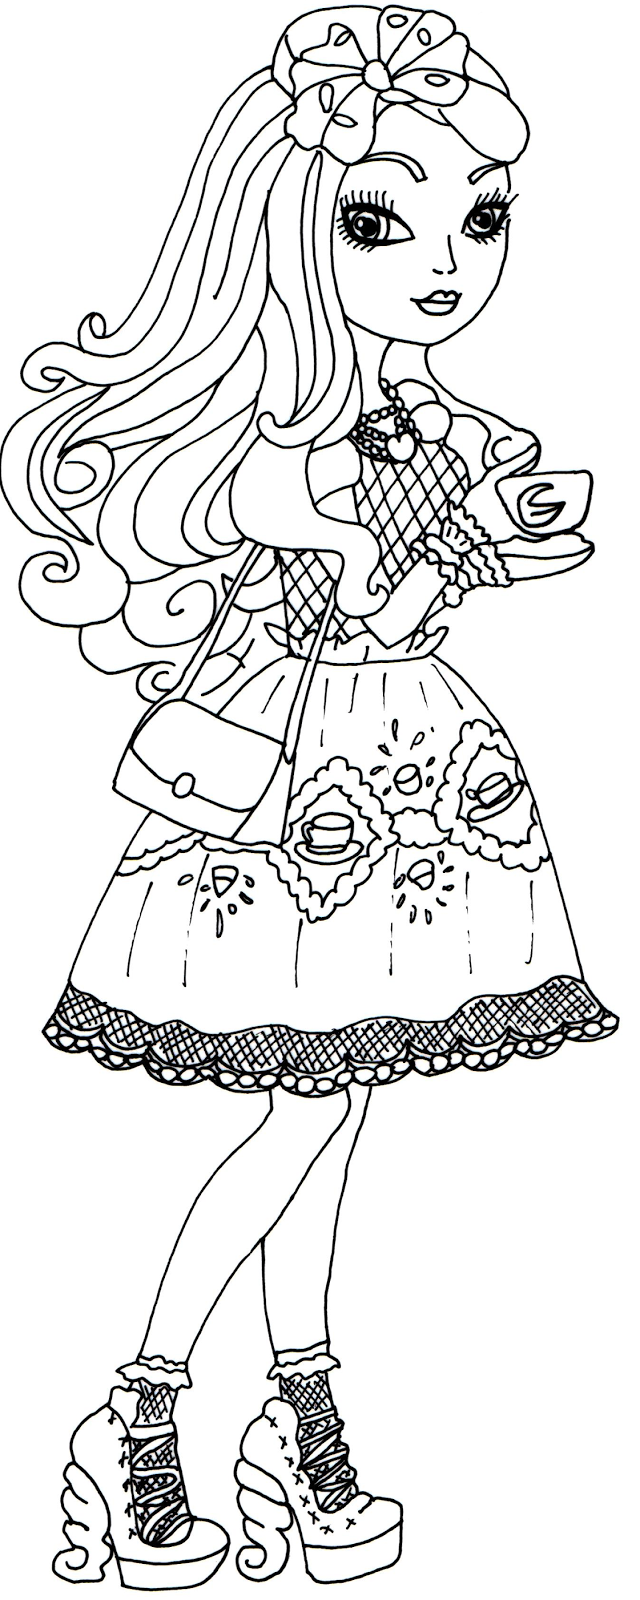 Coloring Pages Apple White : Free printable ever after high coloring pages april